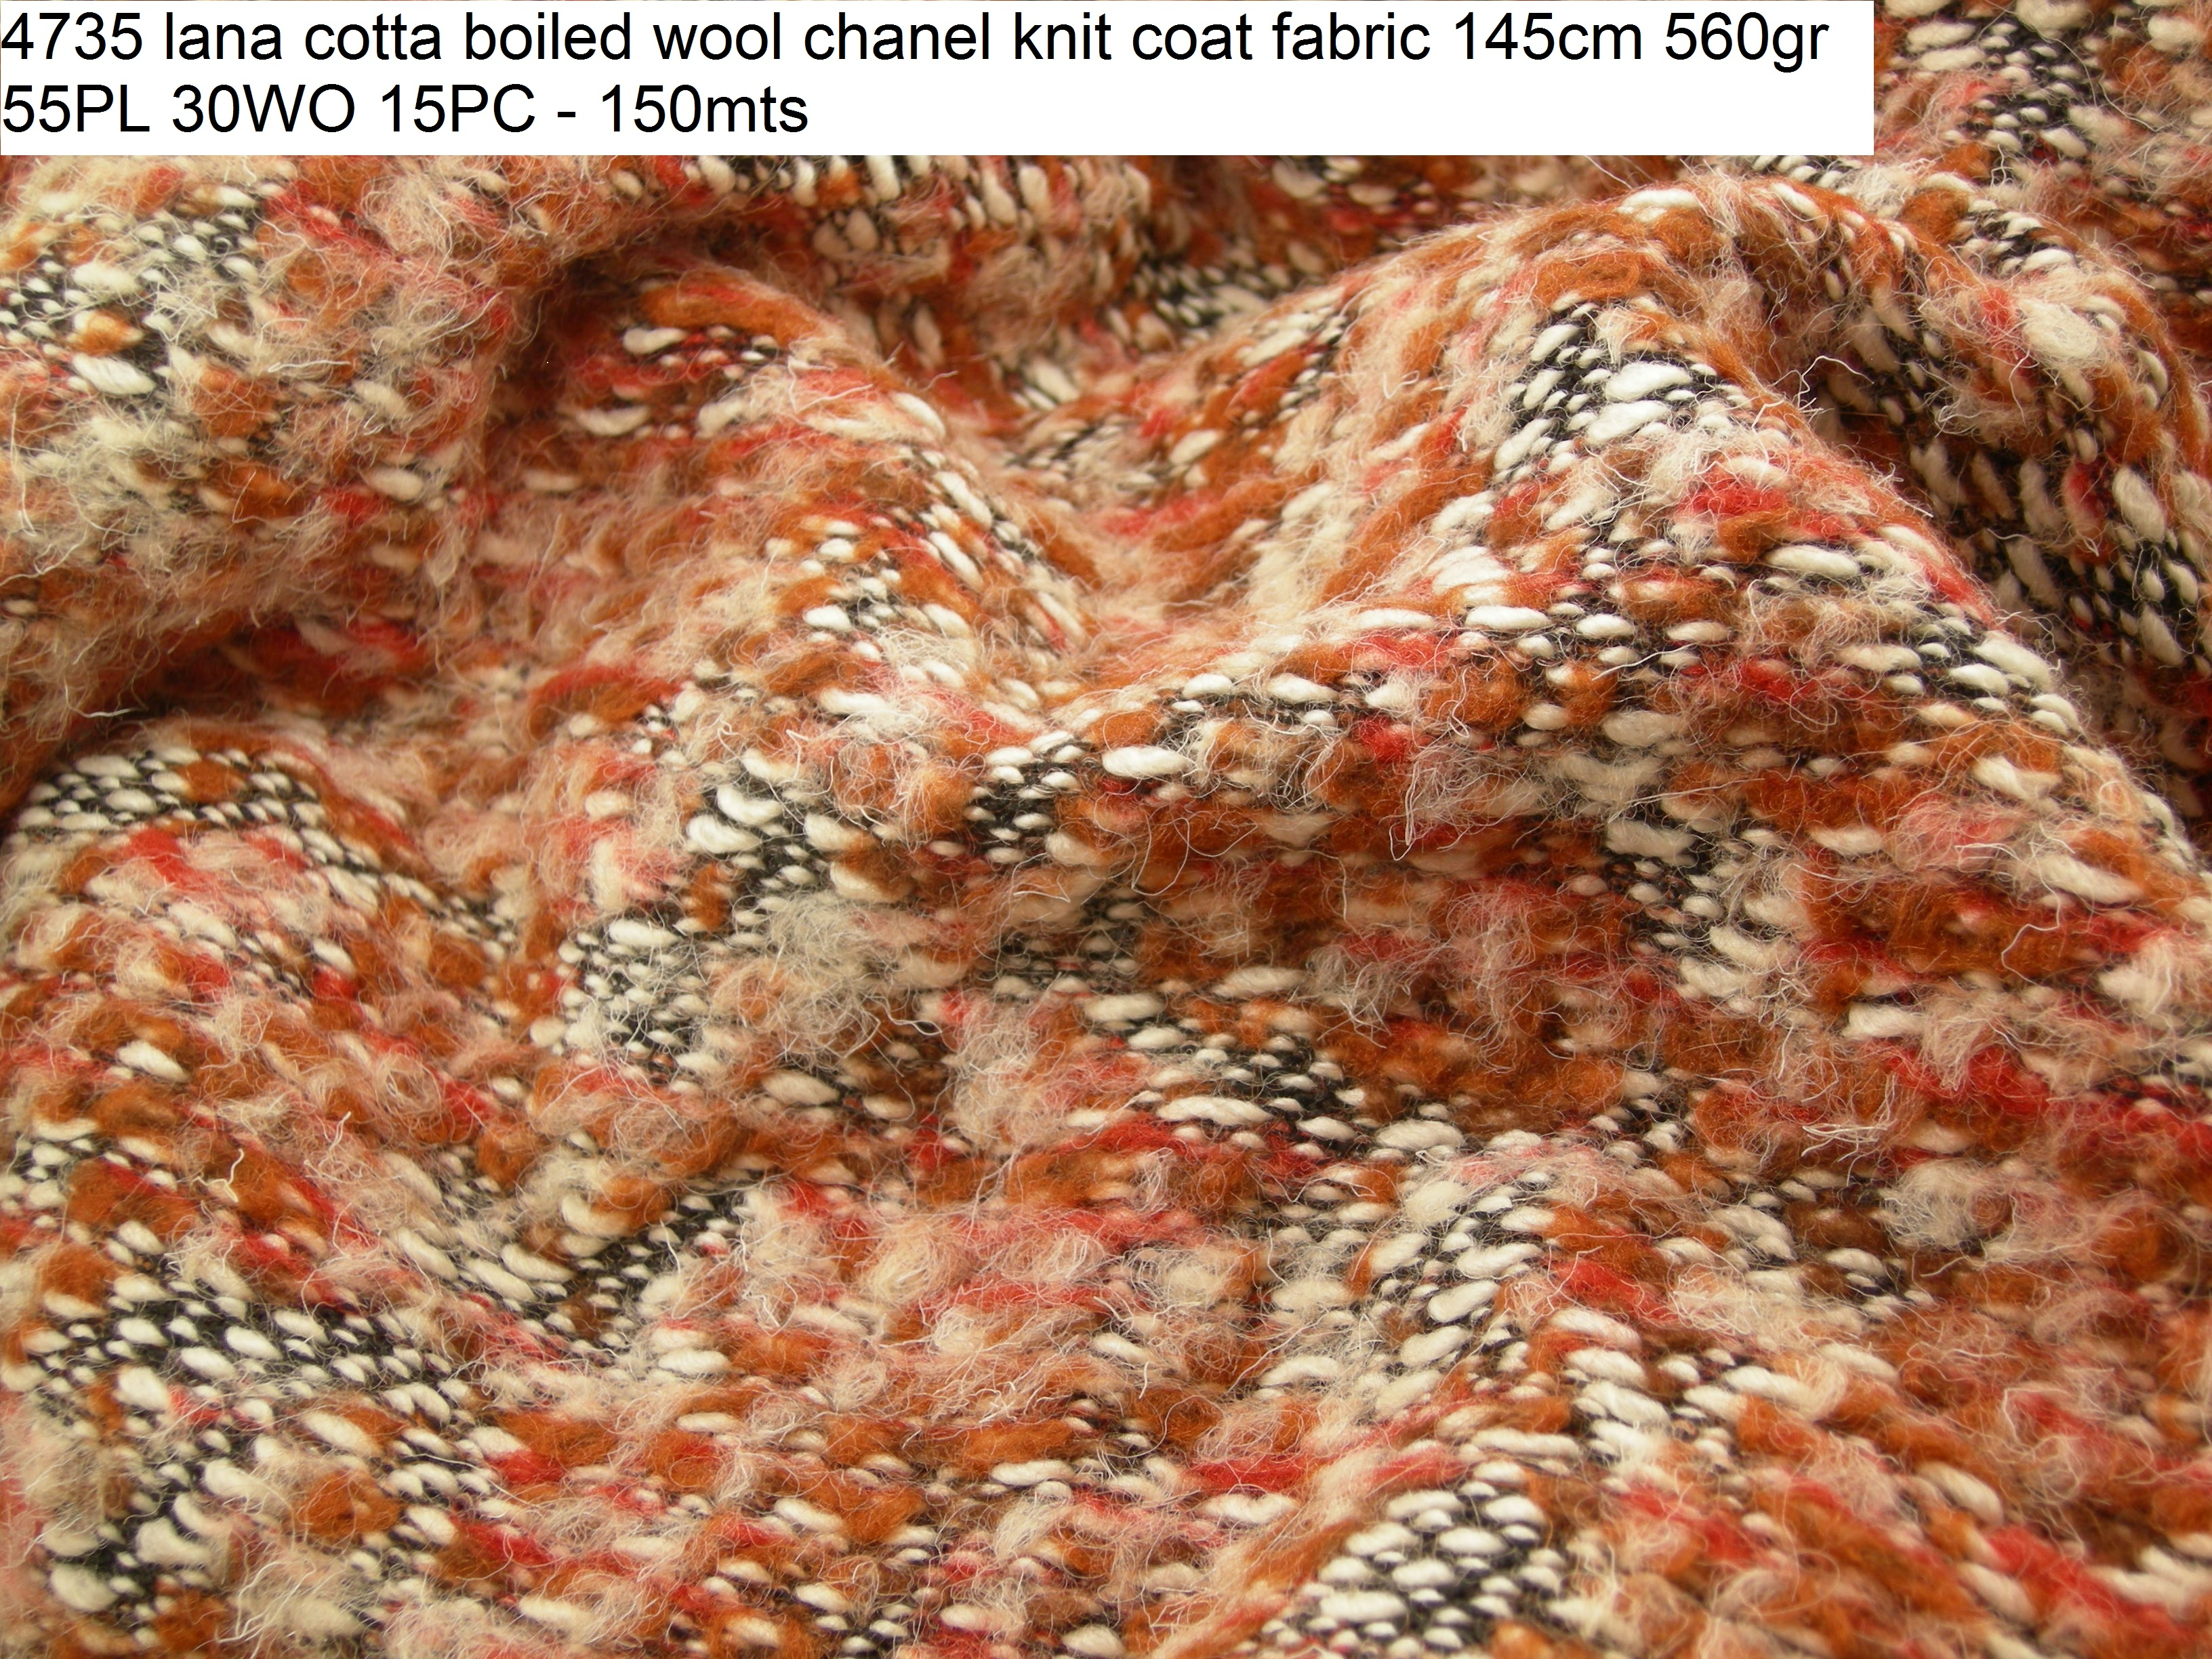 4735 lana cotta boiled wool chanel knit coat fabric 145cm 560gr 55PL 30WO 15PC - 150mts